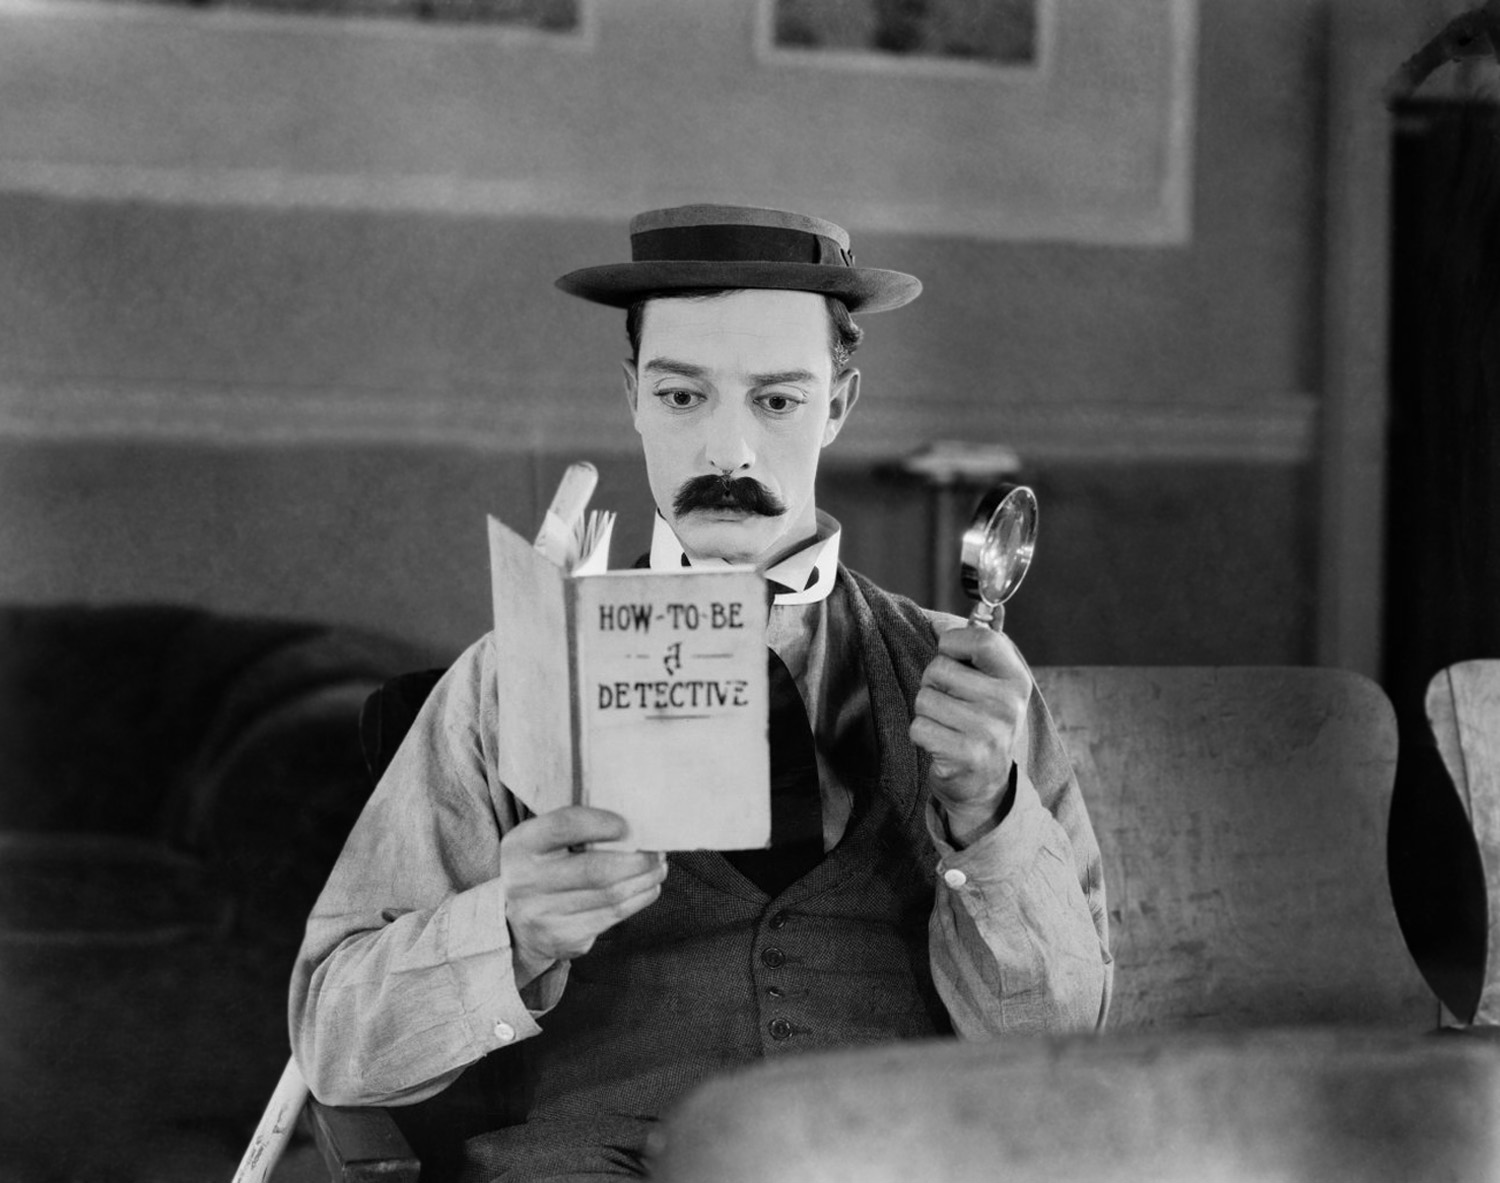 1924: American comedian Buster Keaton (1895-1966) armed with only a magnifying glass and a copy of 'How To Be A Detective' hopes to become a great detective in the film 'Sherlock Junior'.